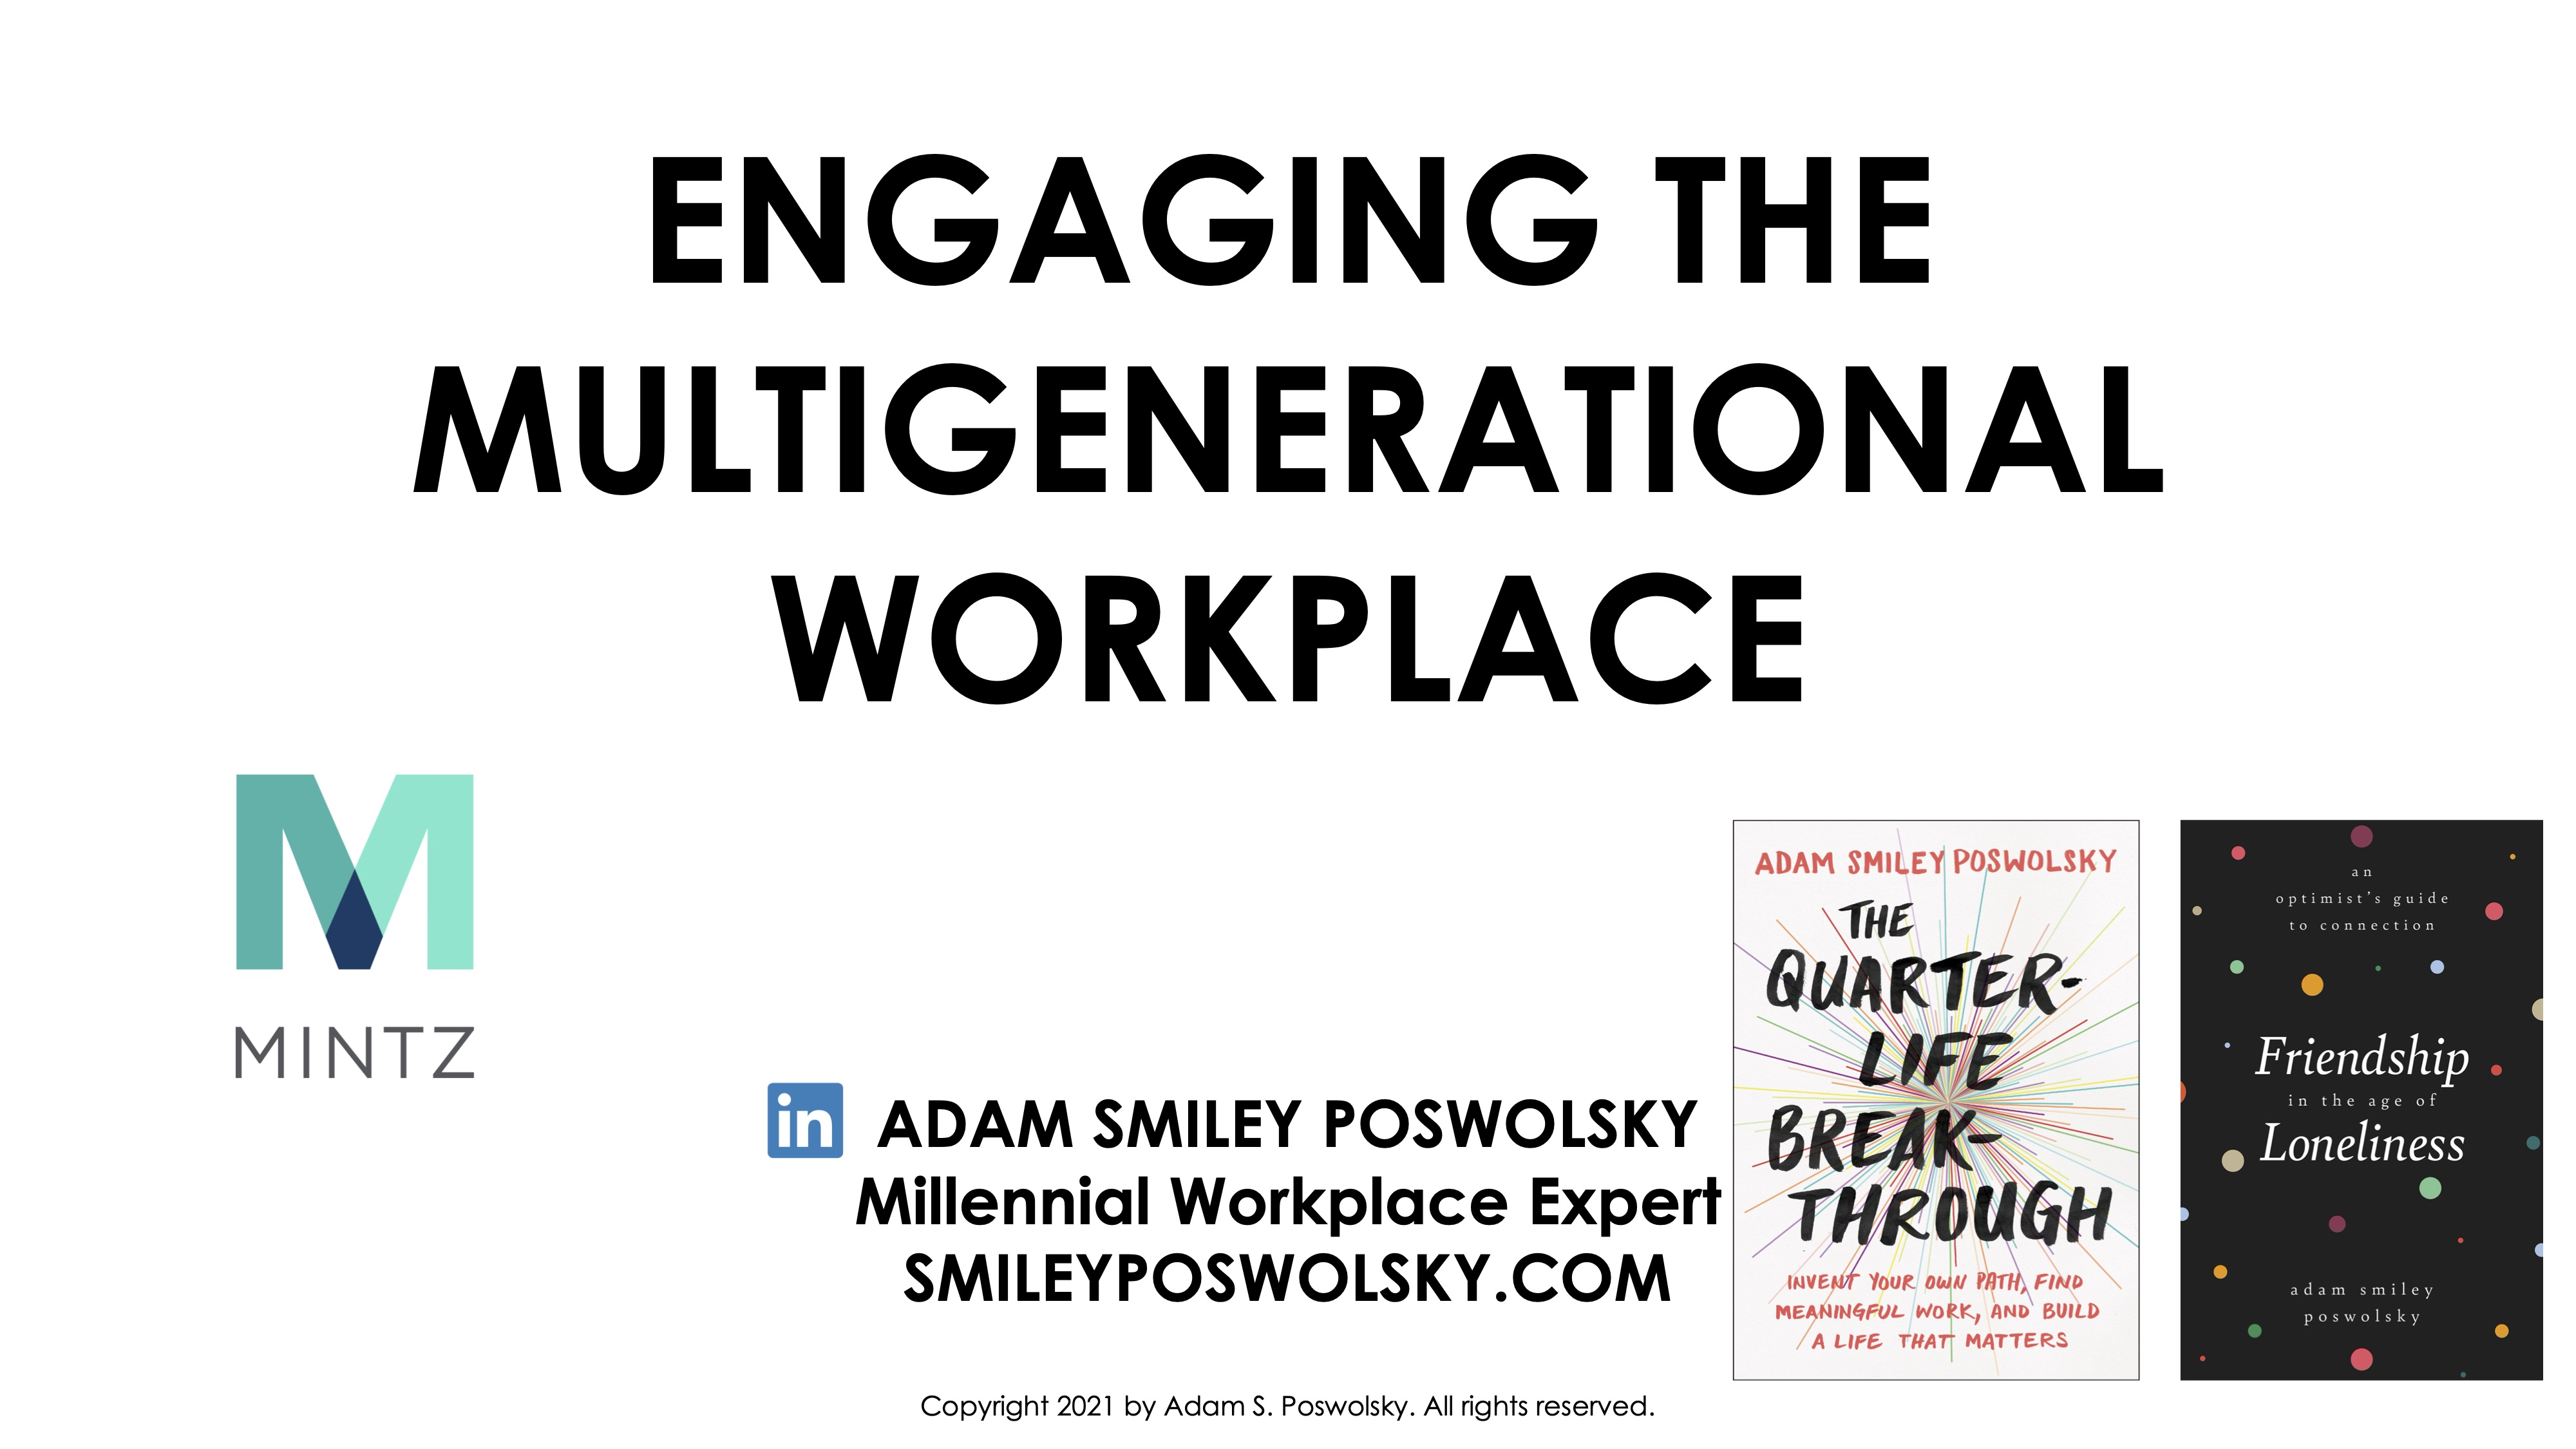 Session 3 - Keynote Presentation - Engaging the Multigenerational Workplace